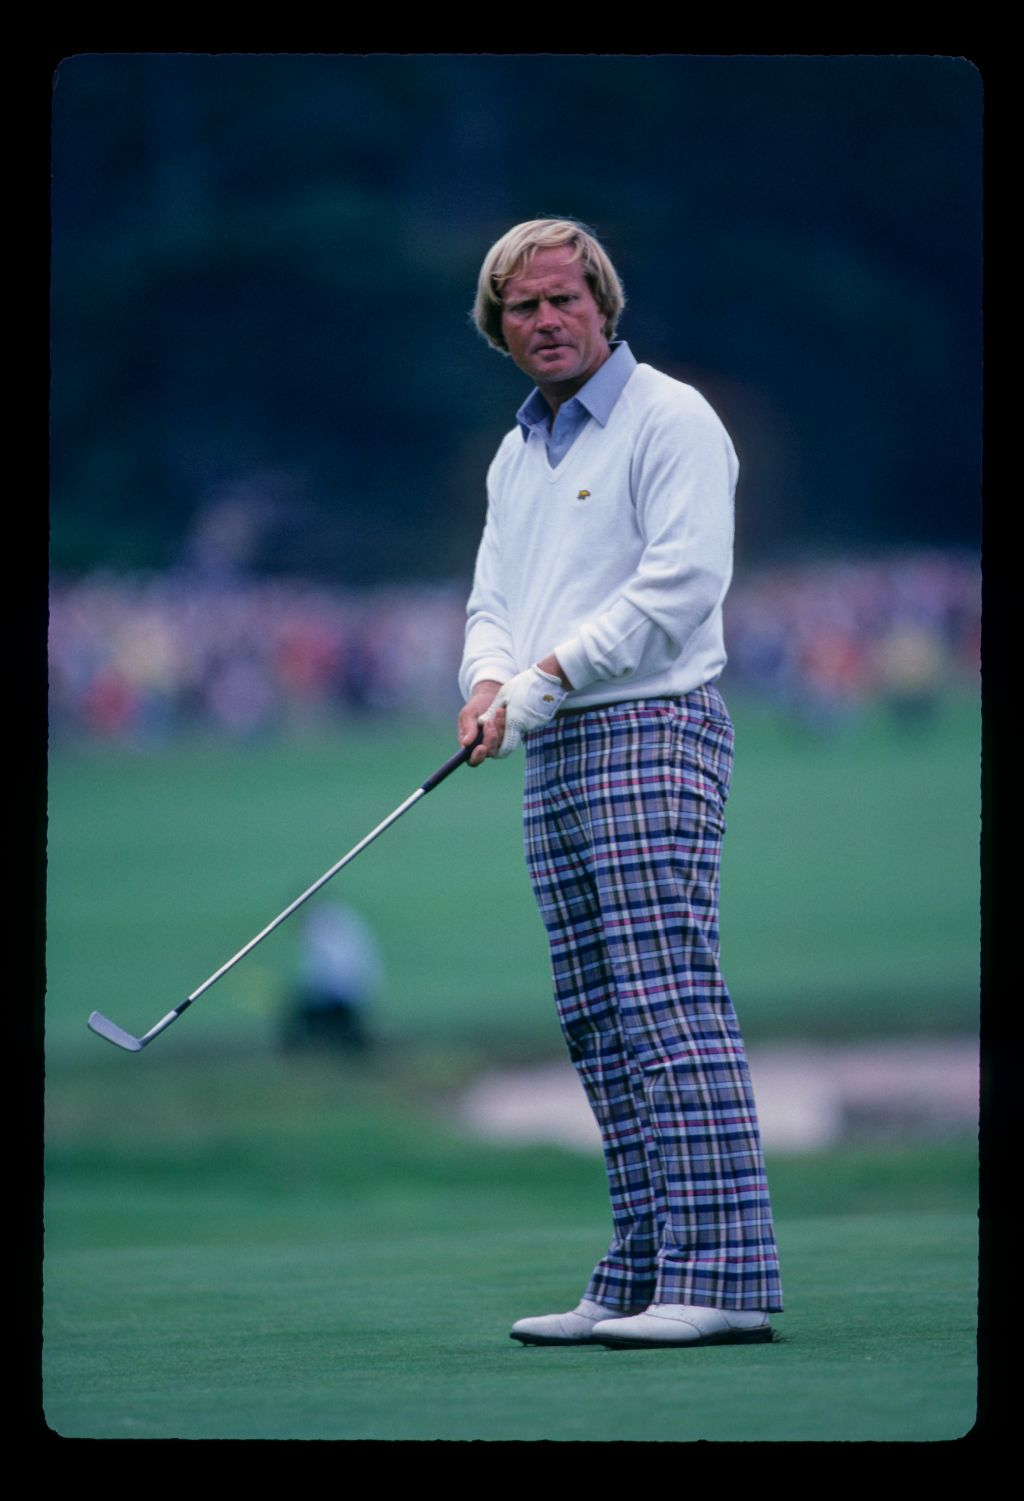 Jack Nicklaus looking accusingly at a putt during the 1982 US Open